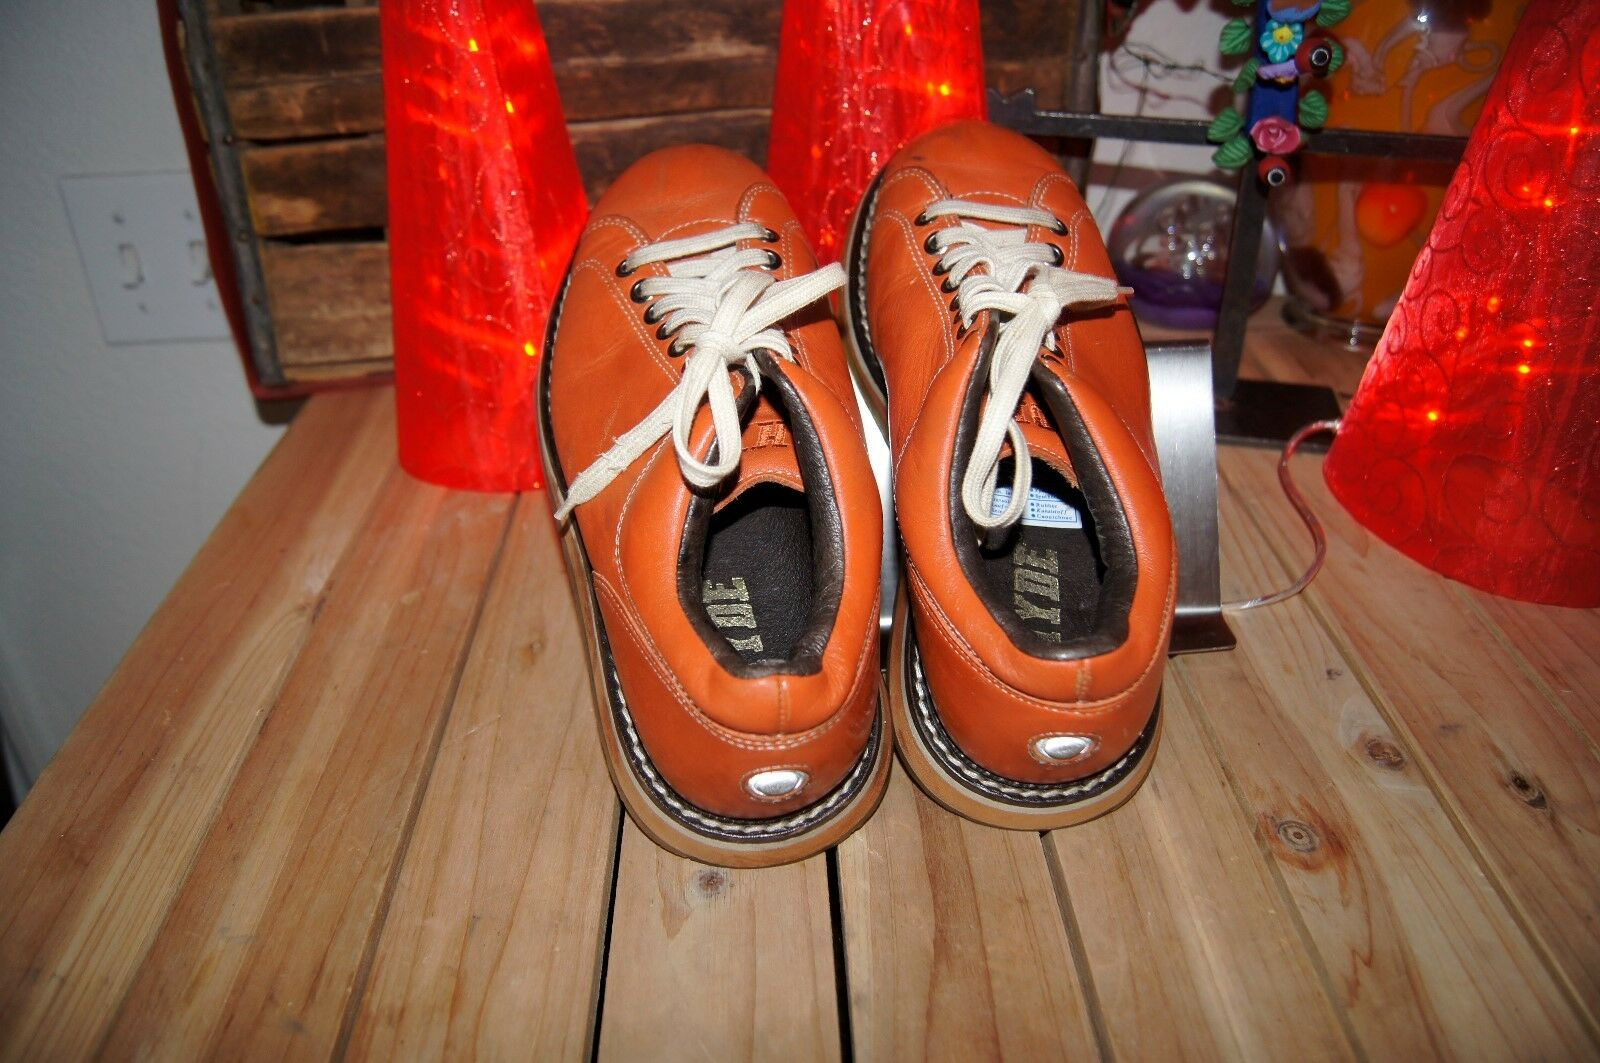 orange LEATHER LEATHER LEATHER HYDE shoes 7.5 8 38 orange OXFORD BOWLING STYLE SHOE 7.5 8 282c2b